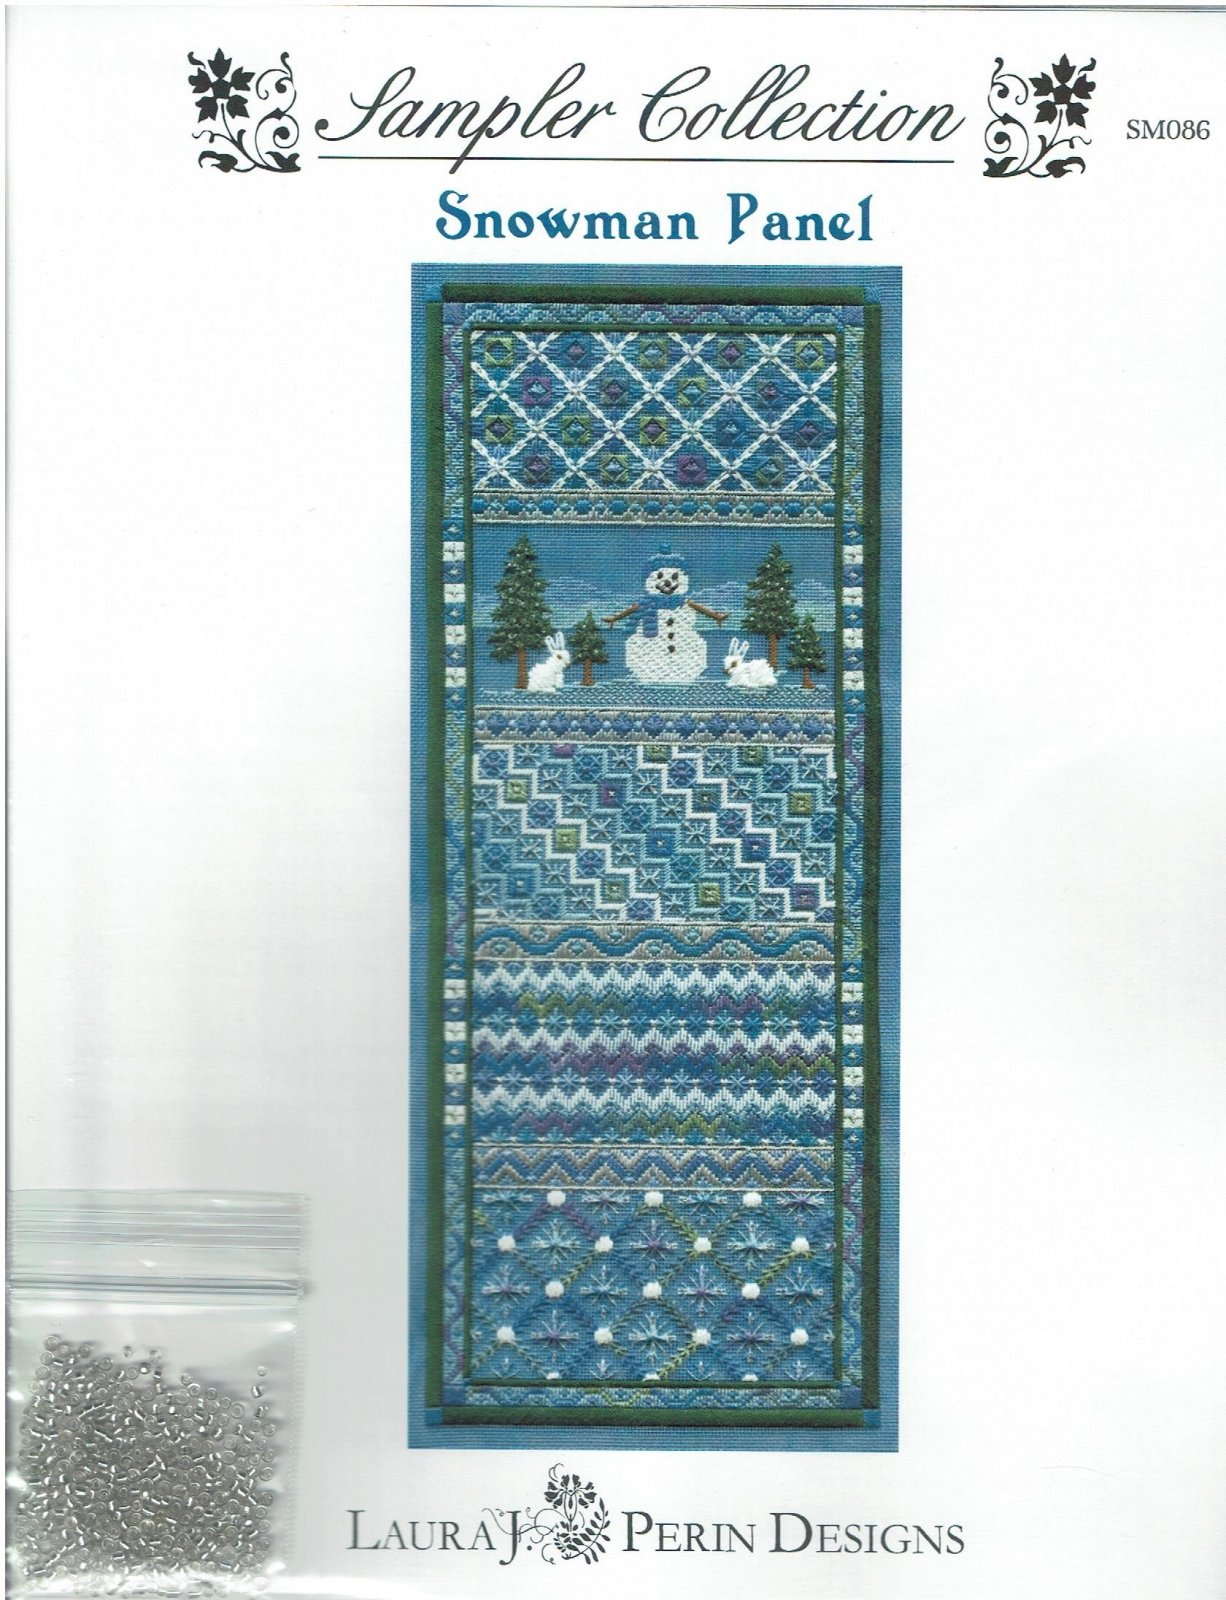 Snowman Panel by Laura J Perin